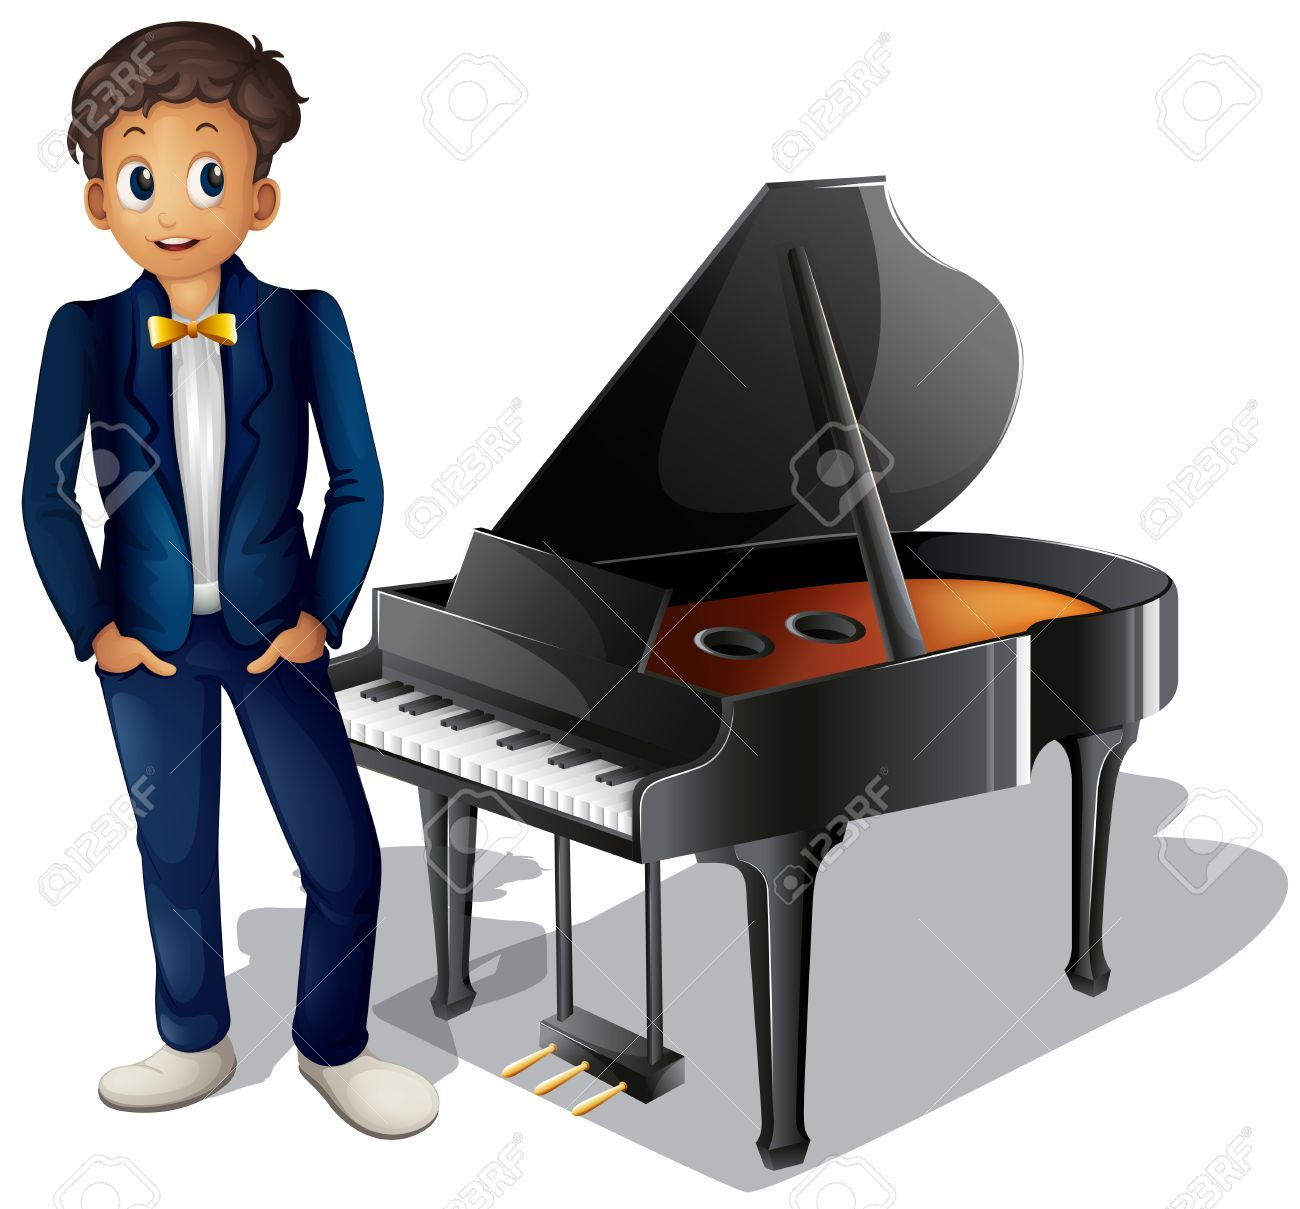 Boy playing piano clipart.